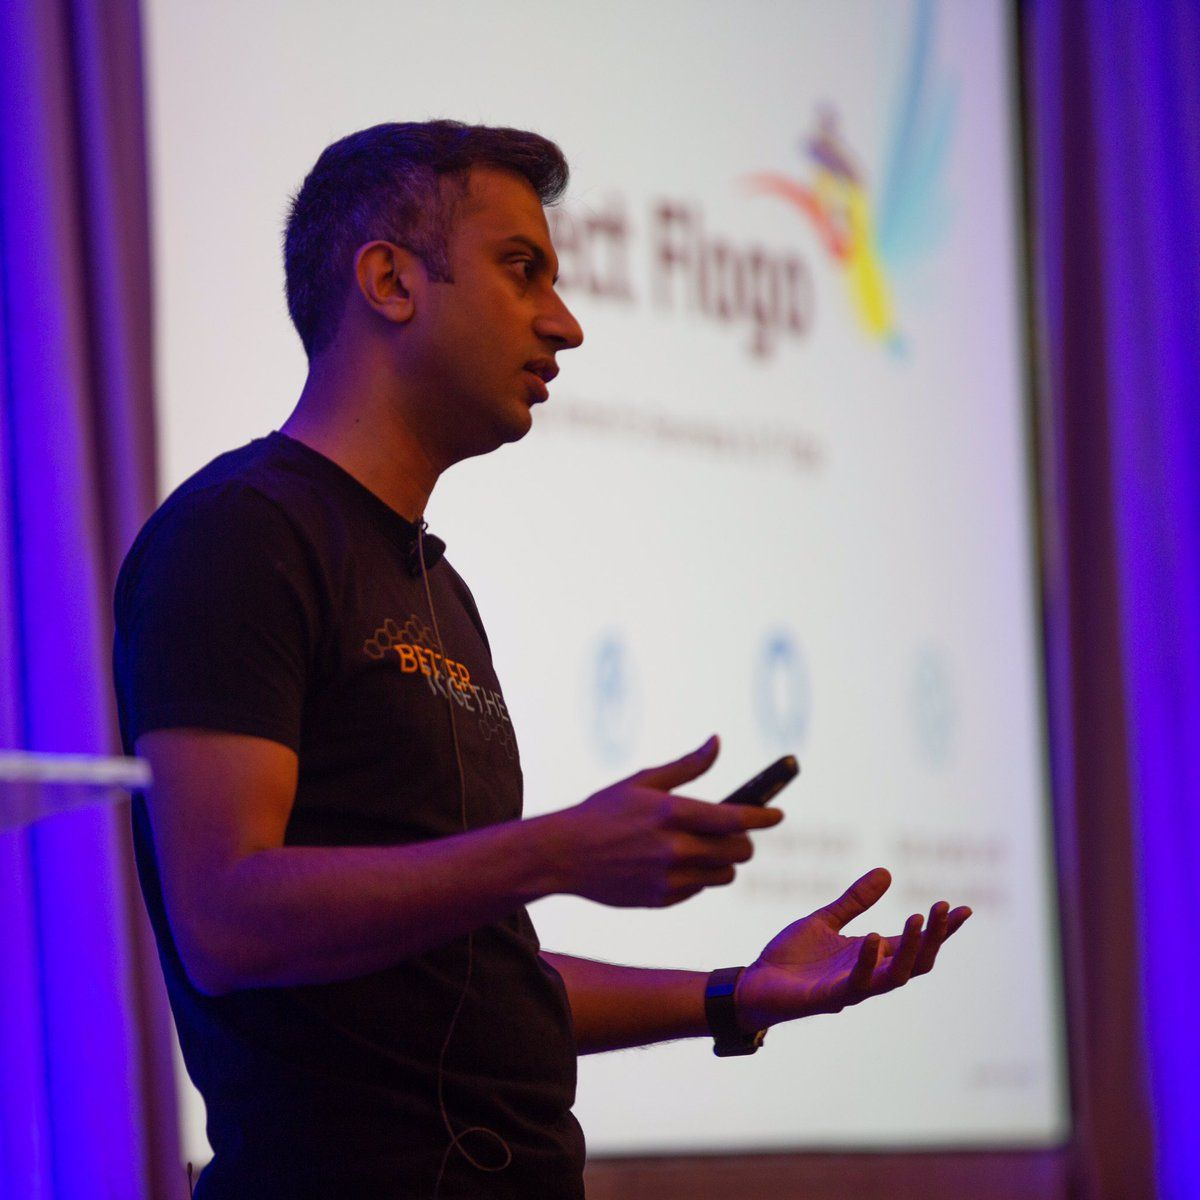 Rahul Kadmar demonstrates how TIBCO products and Scribe operate together in the same ecosystem.